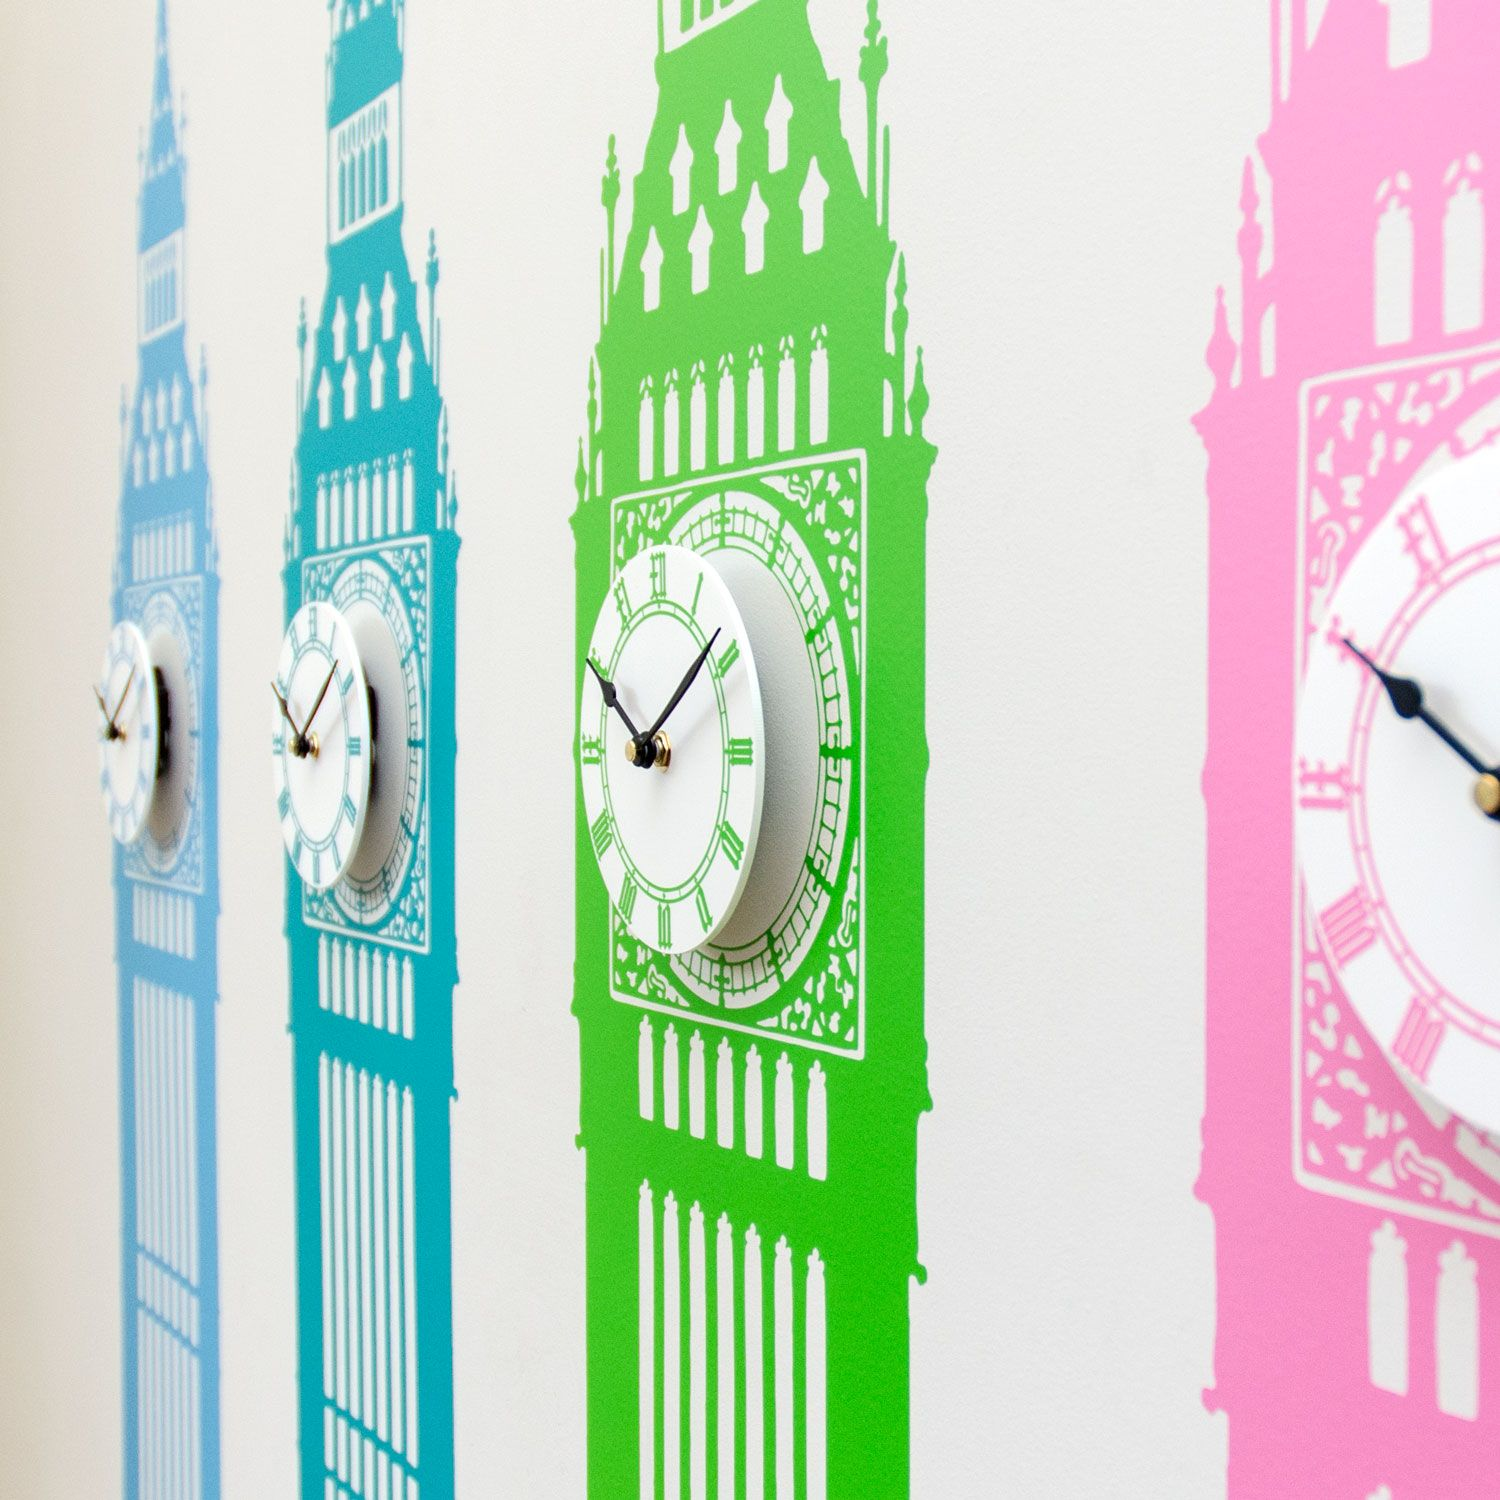 Statement Wall Clocks I Need This This 170cm Statement Big Ben Wall Clock